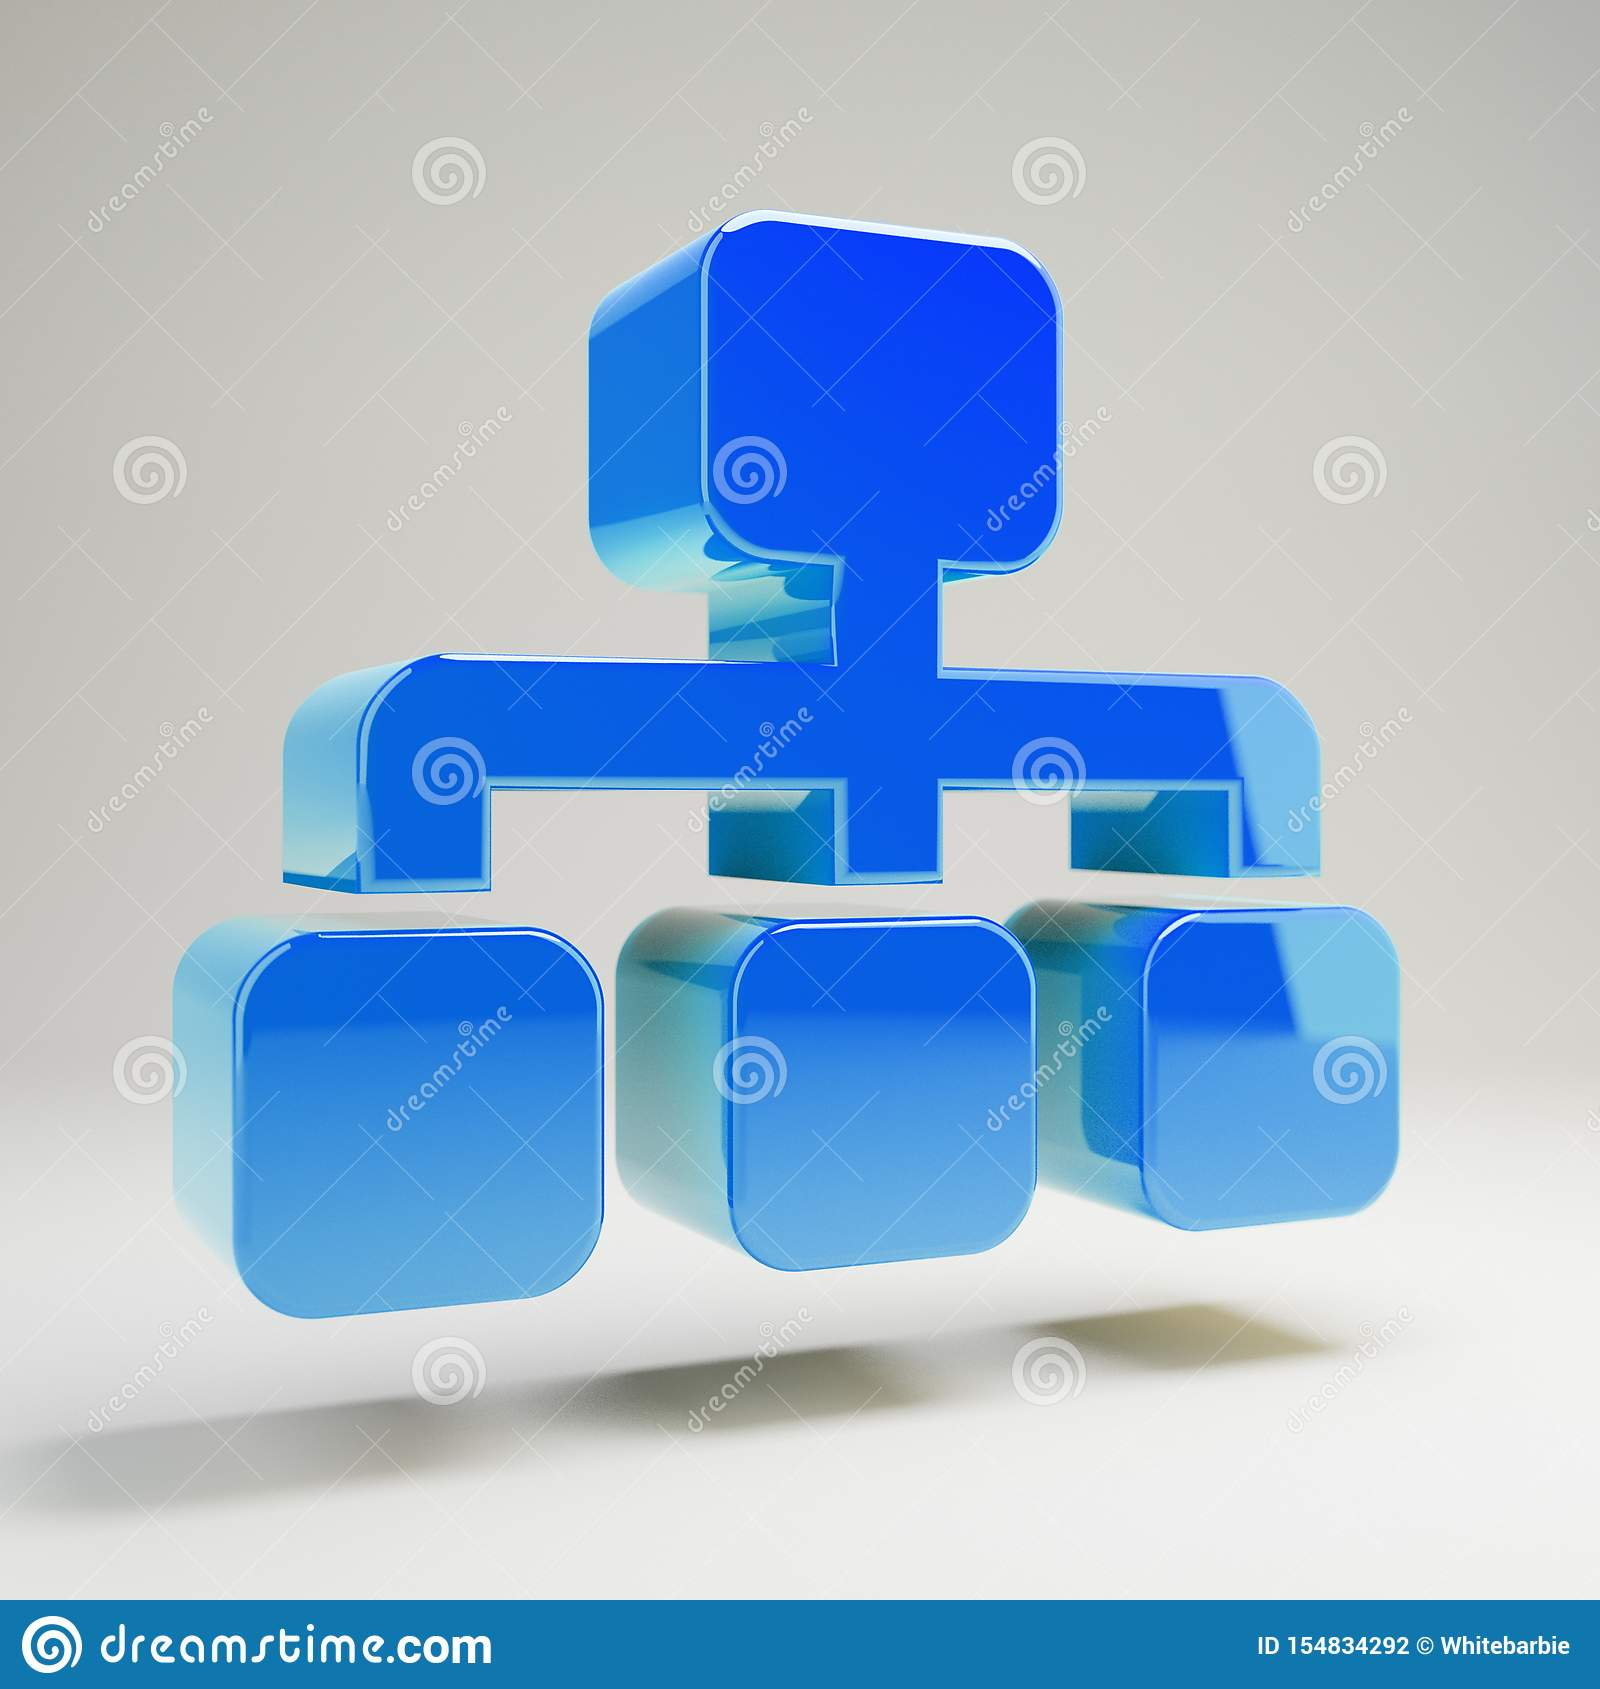 Volumetric glossy blue Sitemap icon isolated on white background